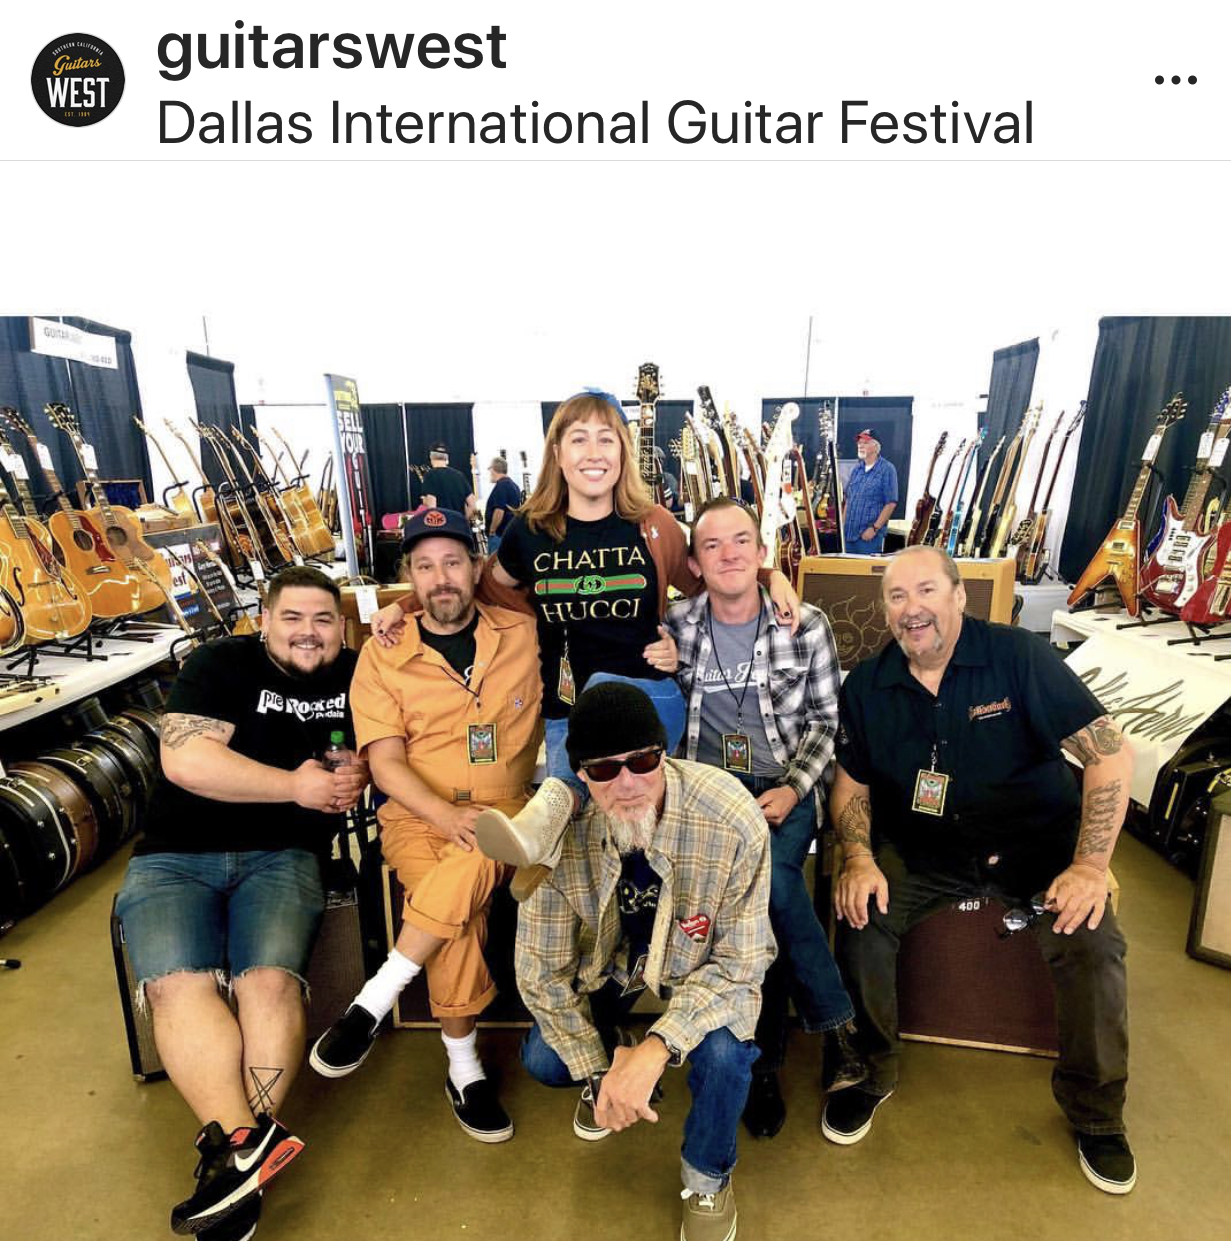 Big Hern, Mercedes and the family at Guitars West